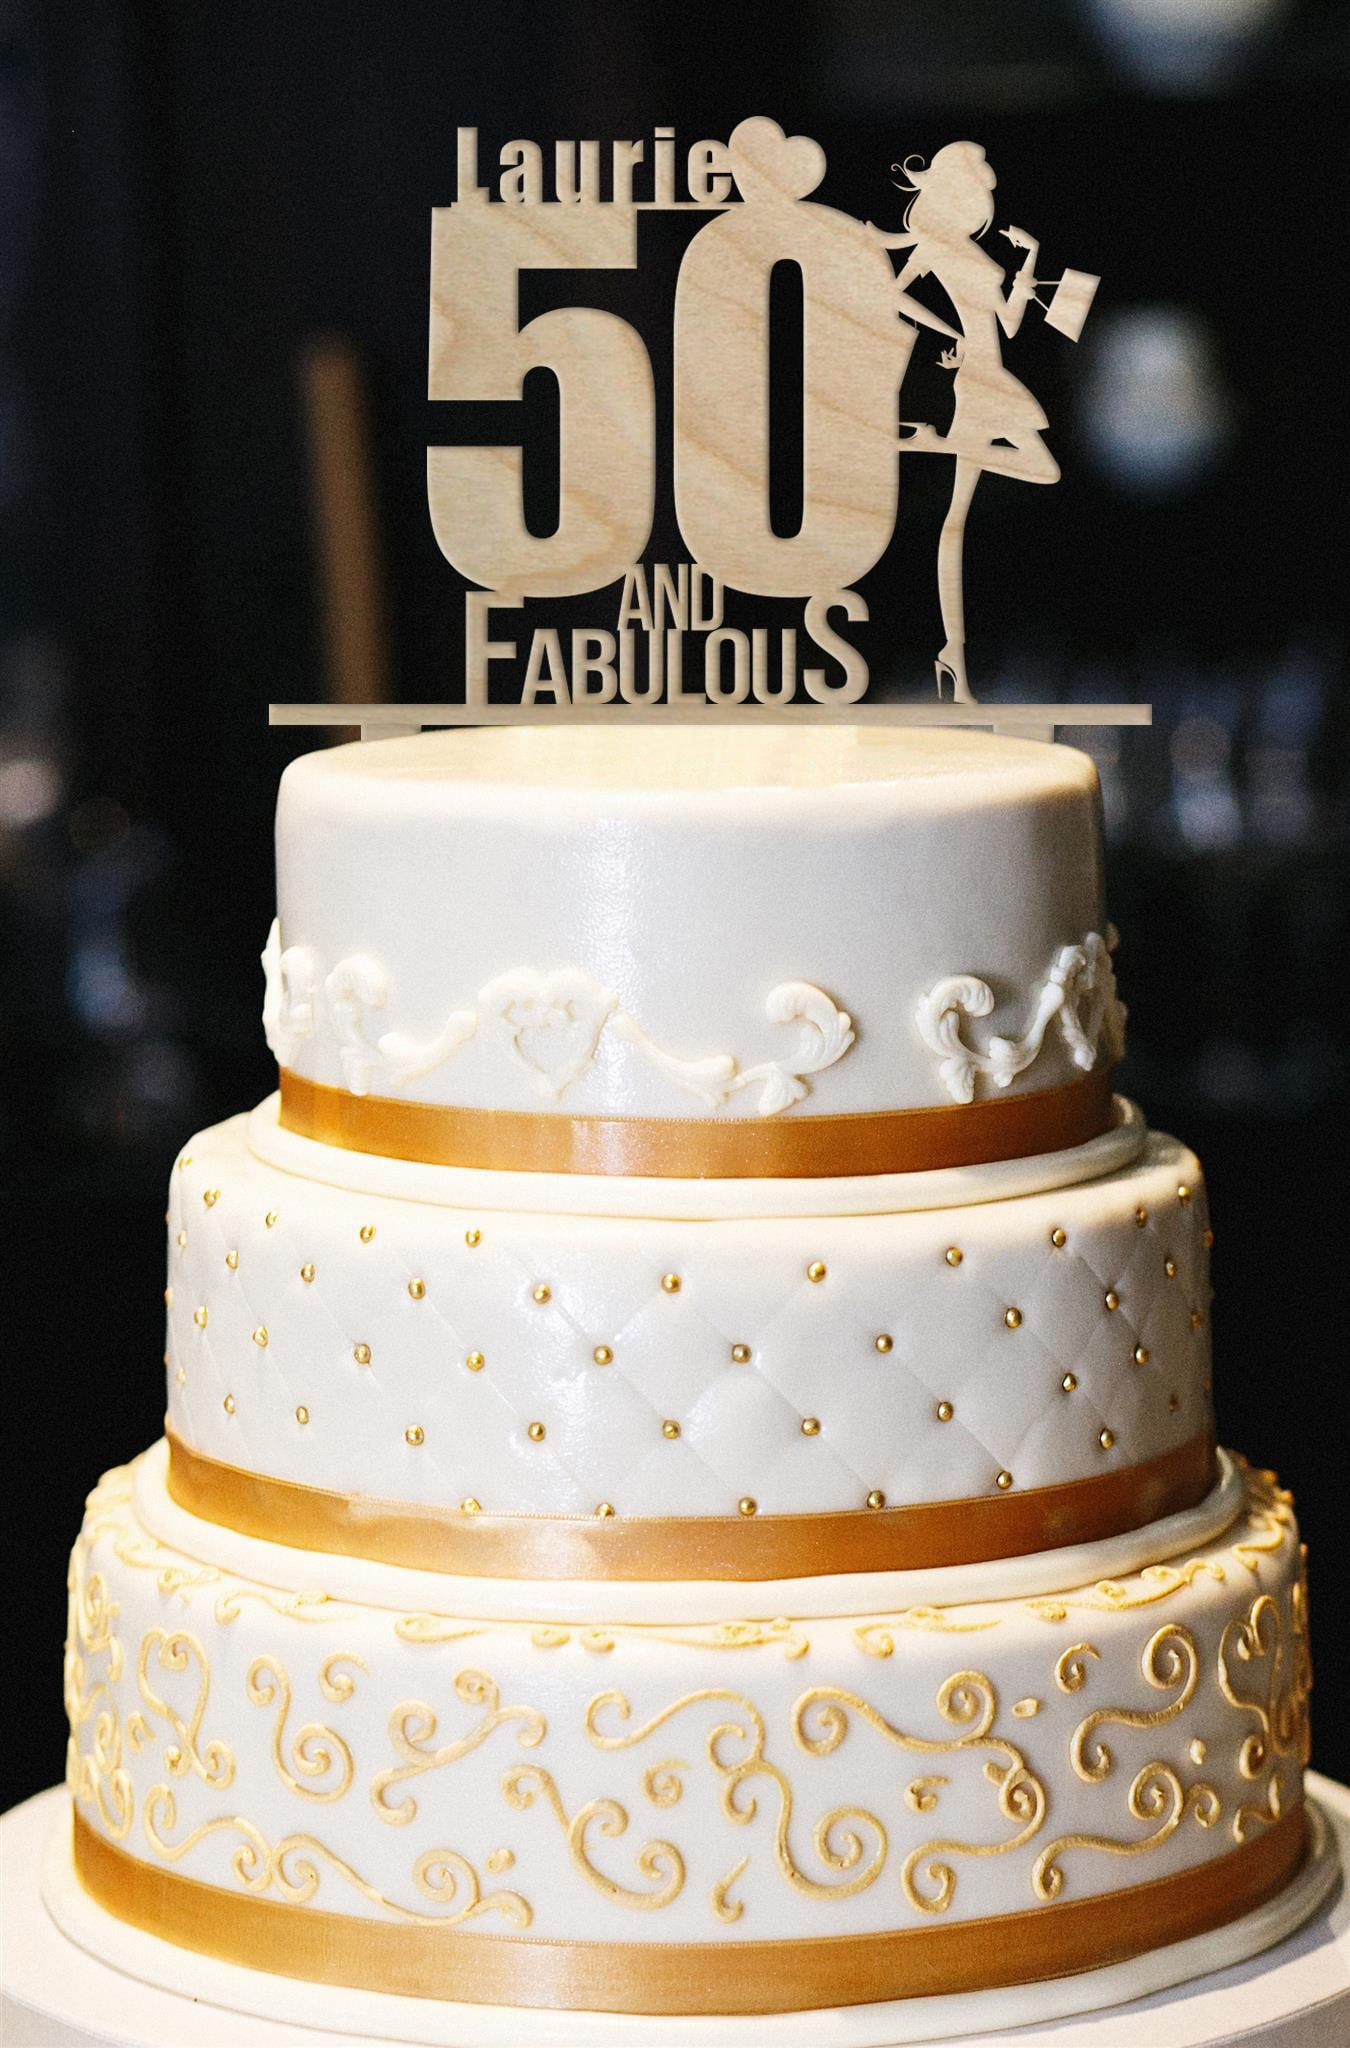 50 And Fabulous Custom Cake Topper Wood Birthday Cake Topper Etsy